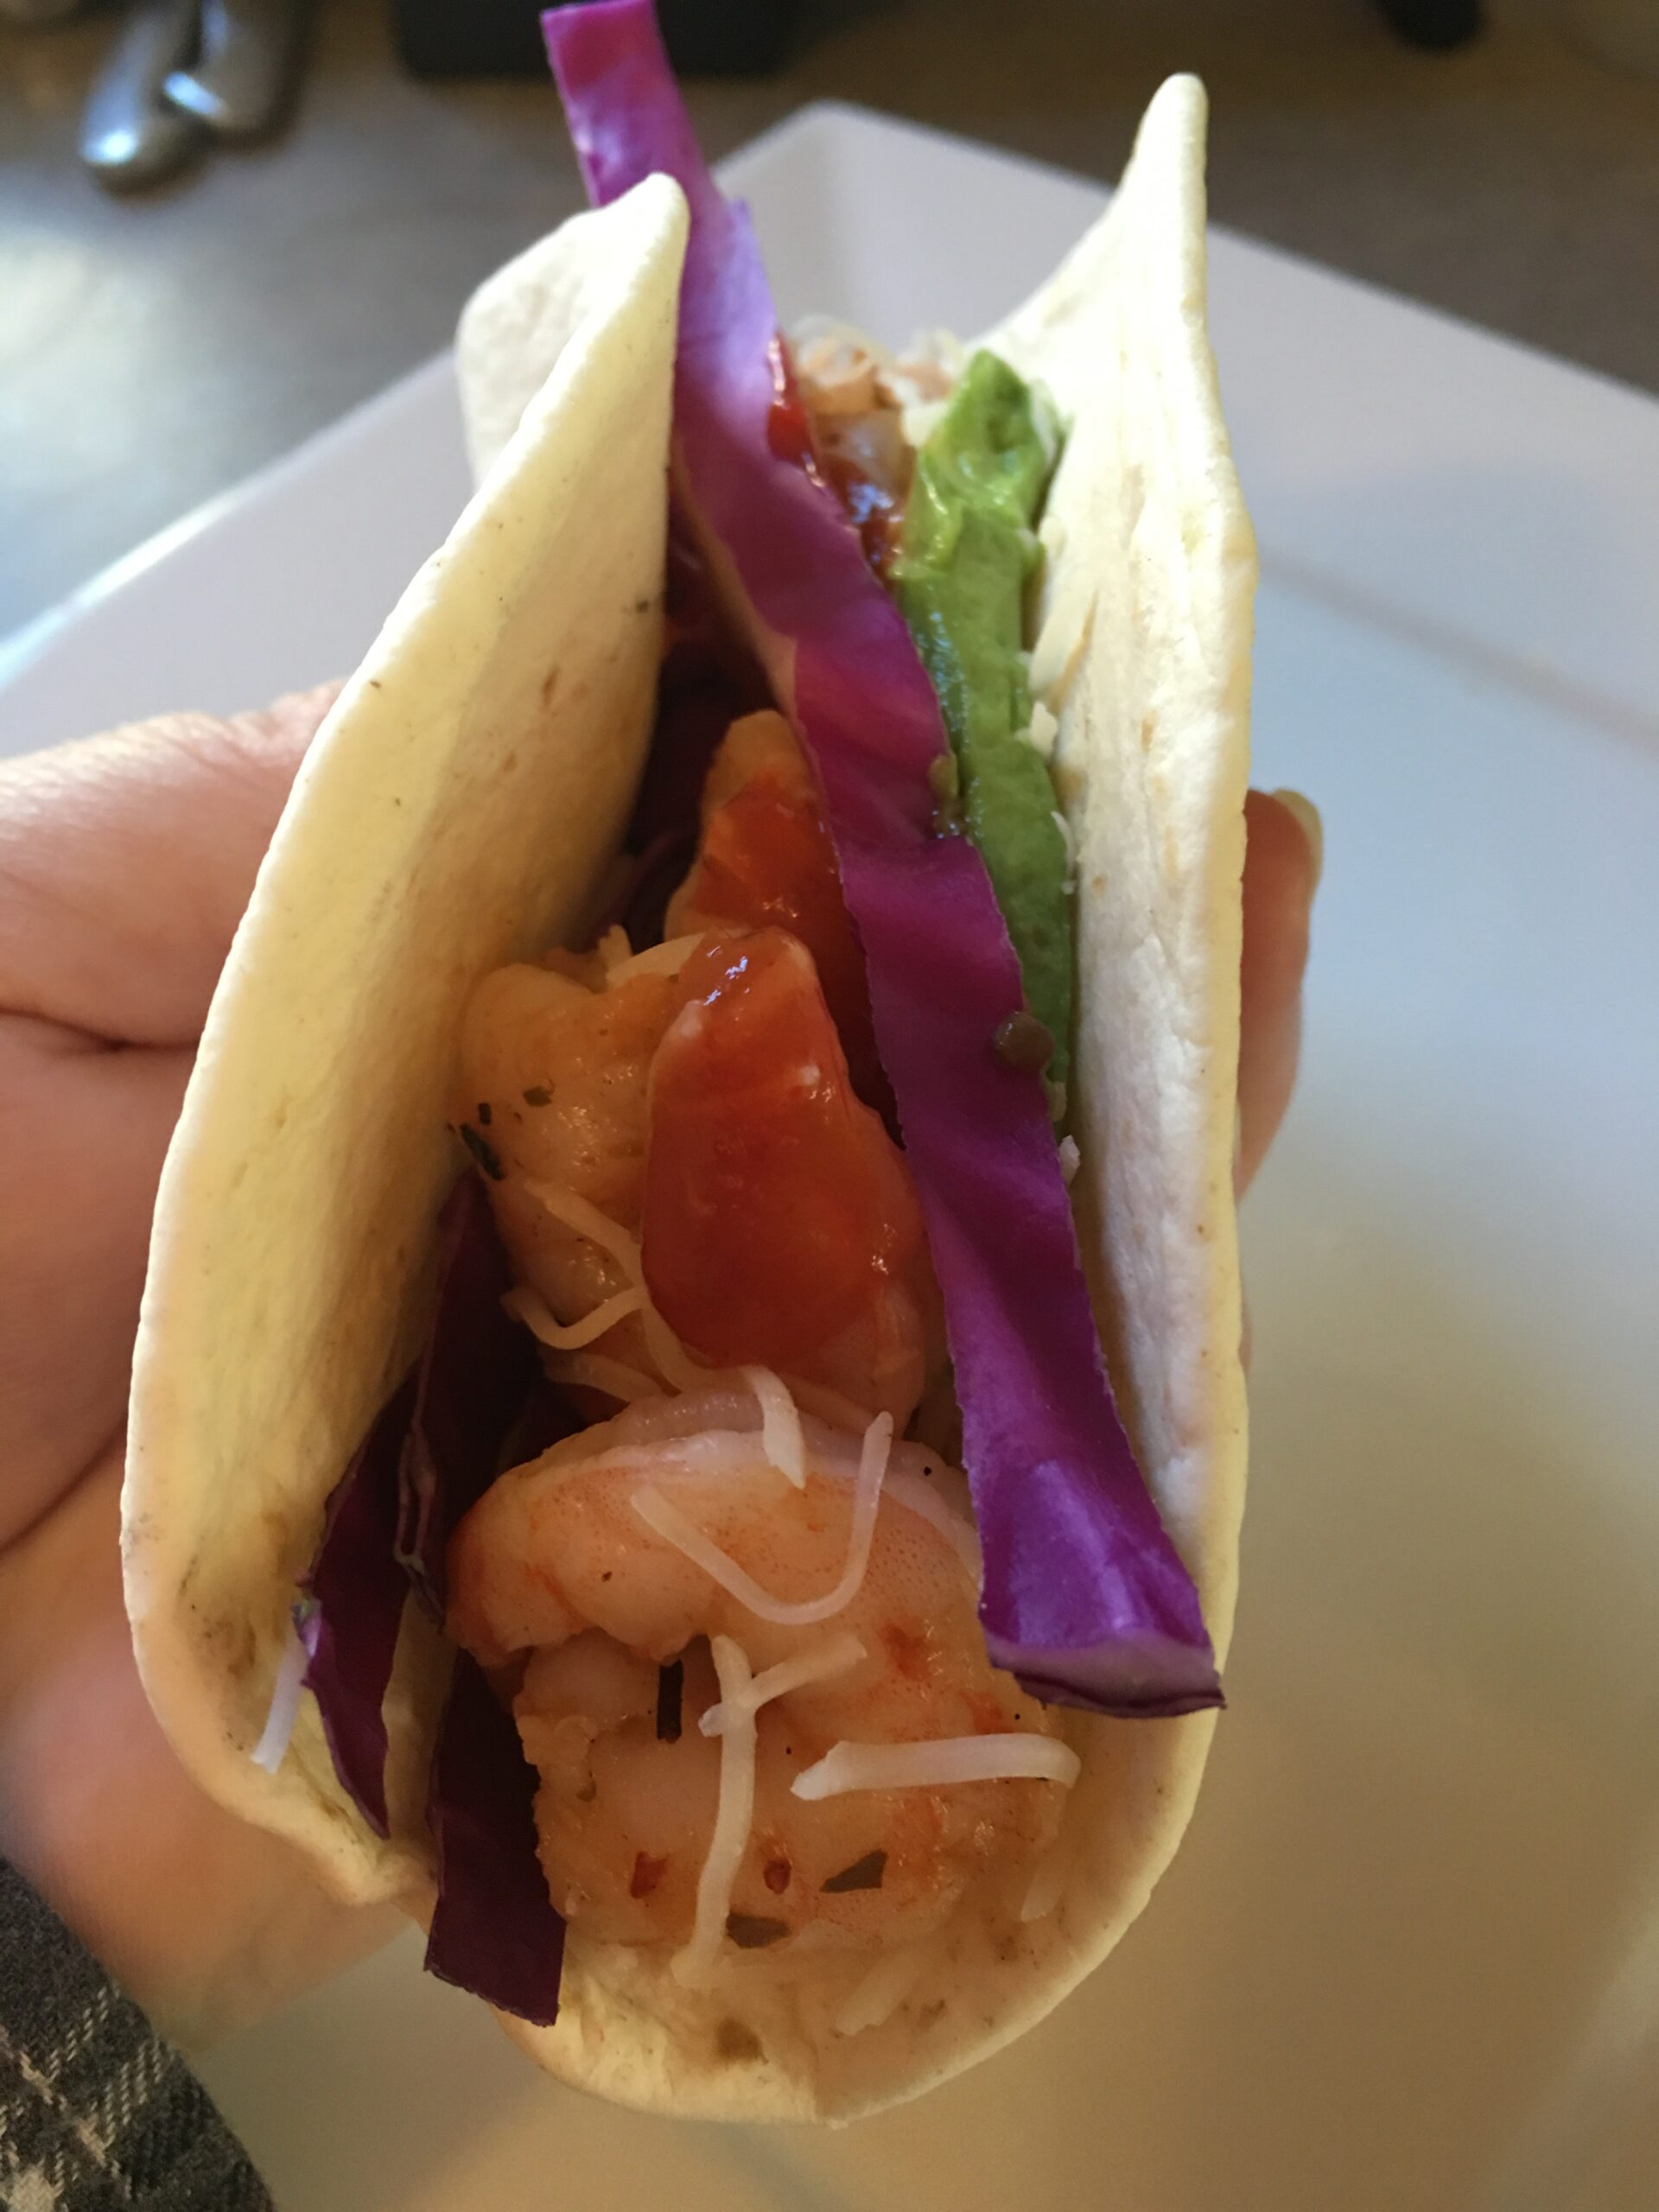 Dinner in a Snap - Shrimp Tacos